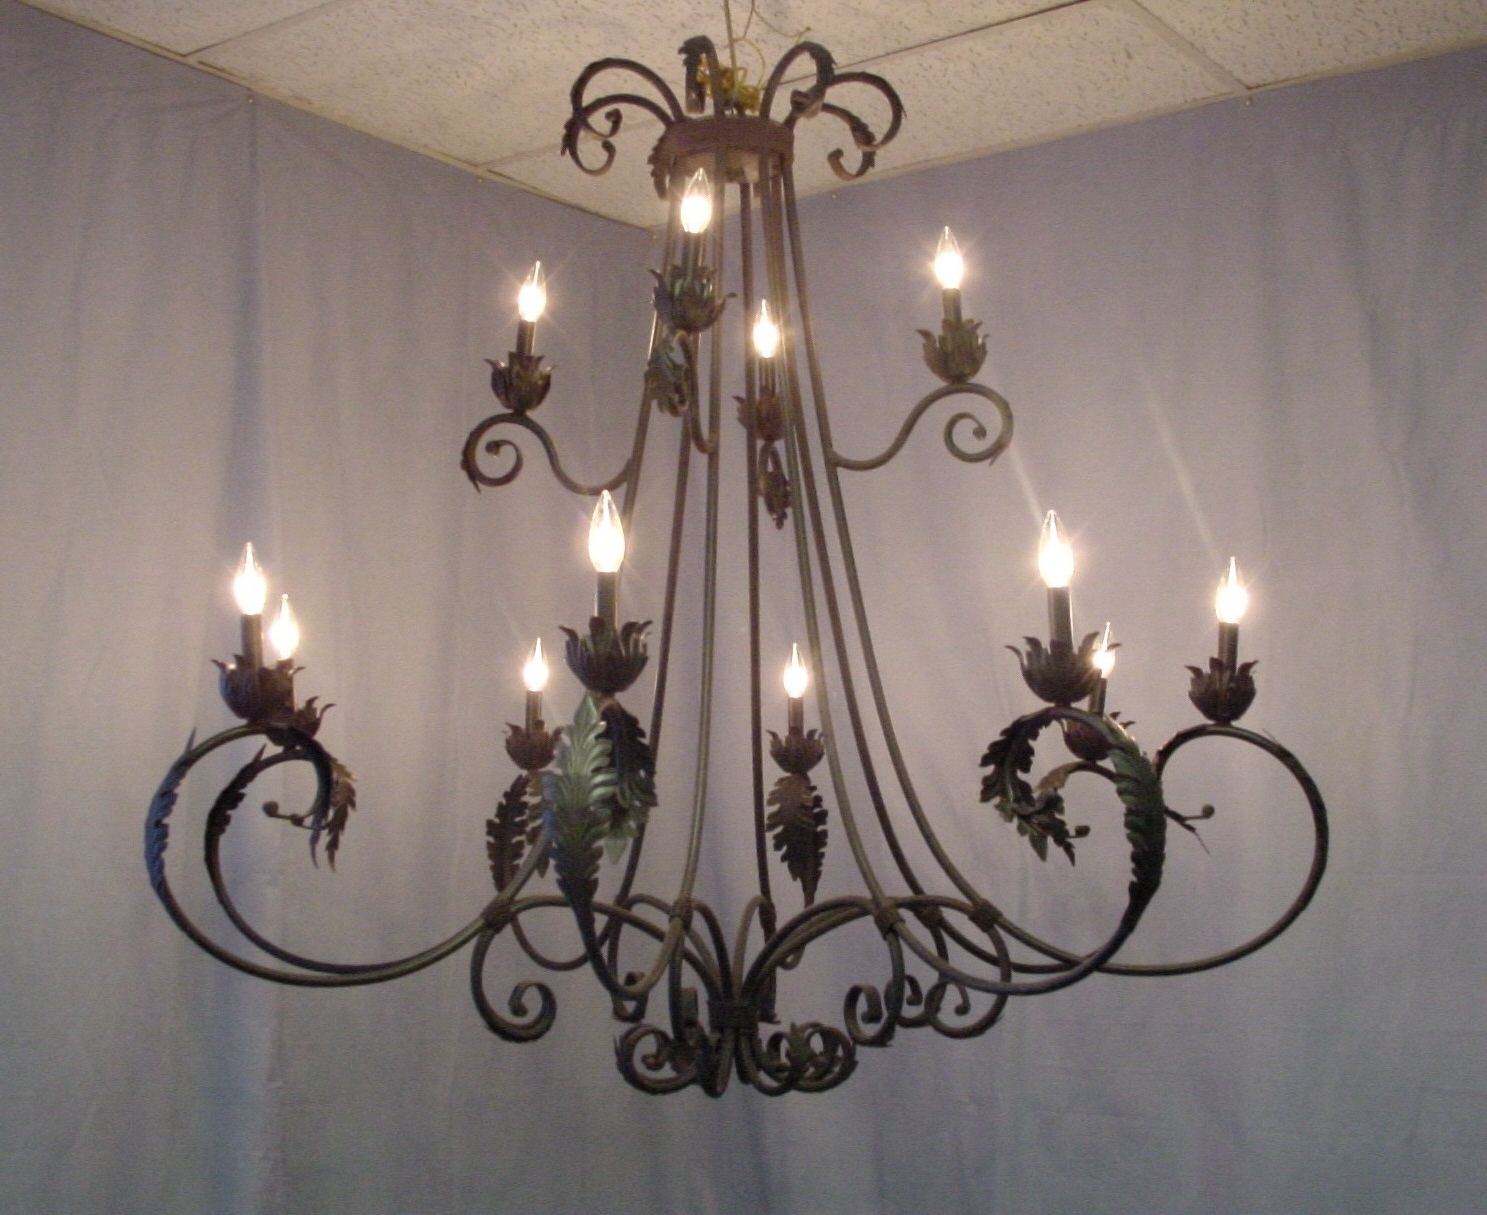 Wrought Iron Chandeliers With Crystal Accents : Lamp World Pertaining To Newest Wrought Iron Chandeliers (View 12 of 20)